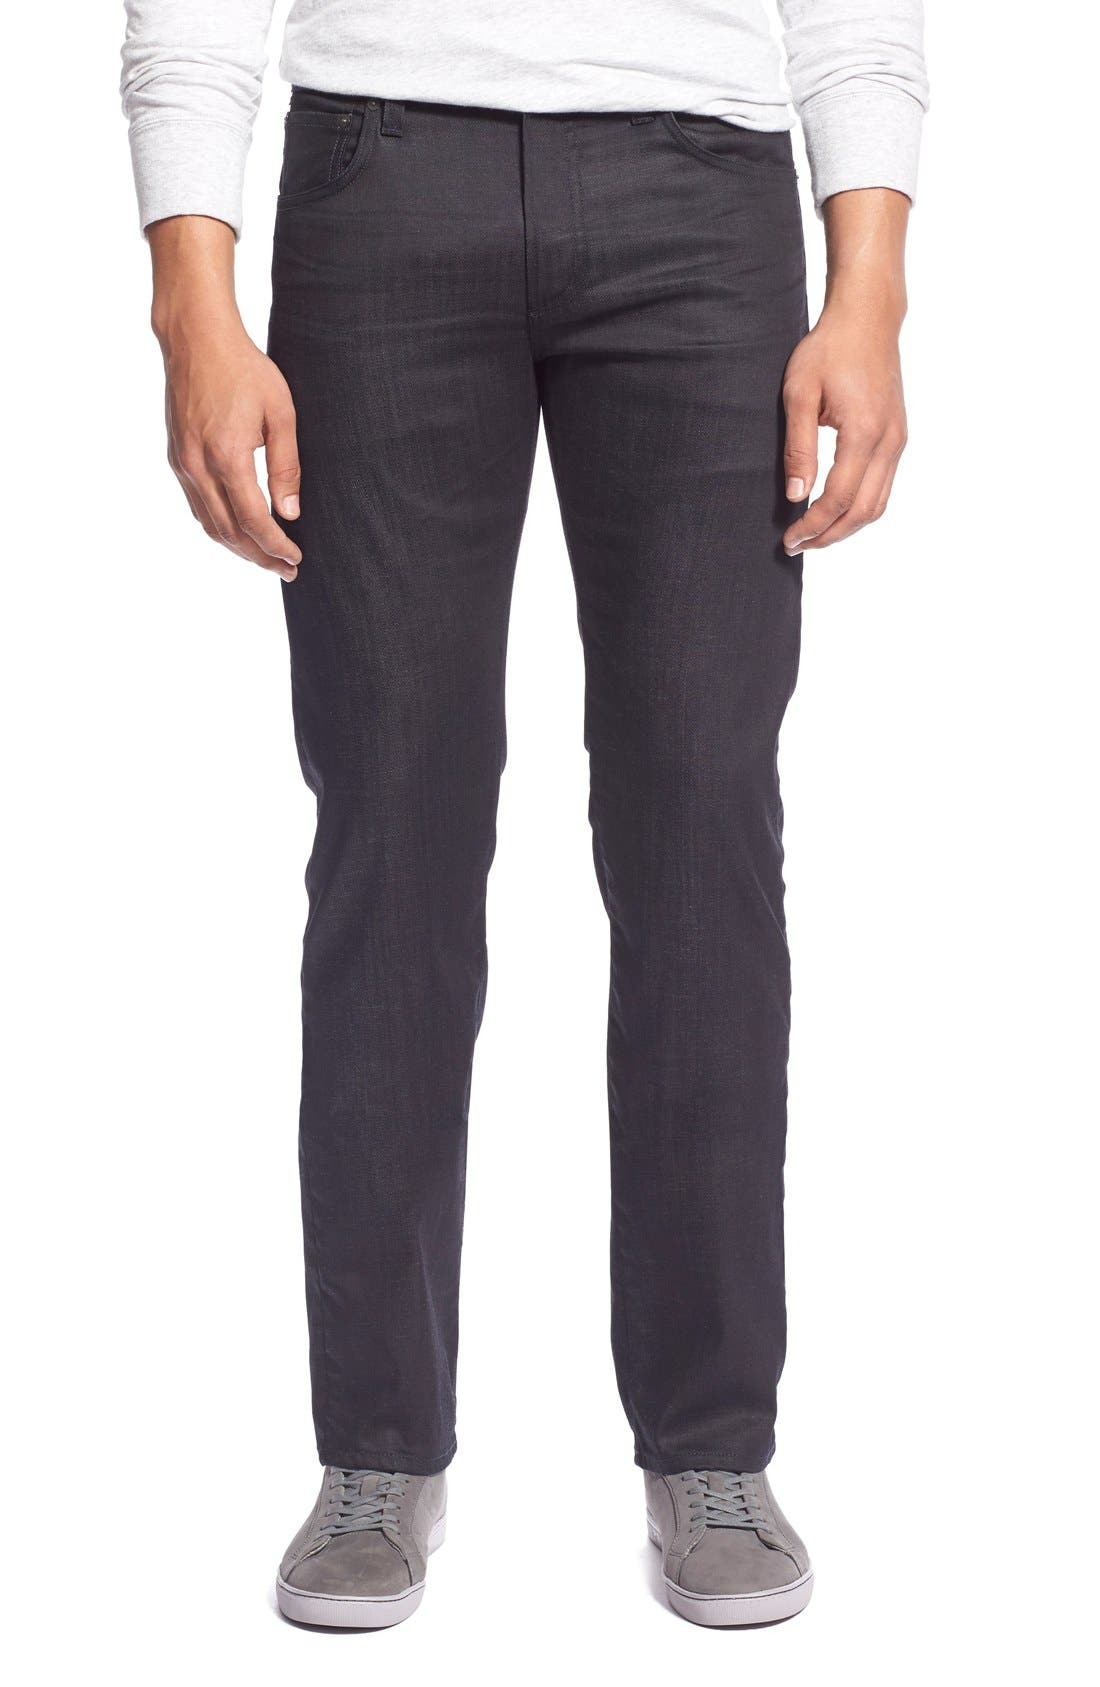 Main Image - Citizens of Humanity 'Core' Slim Fit Jeans (Prestige)